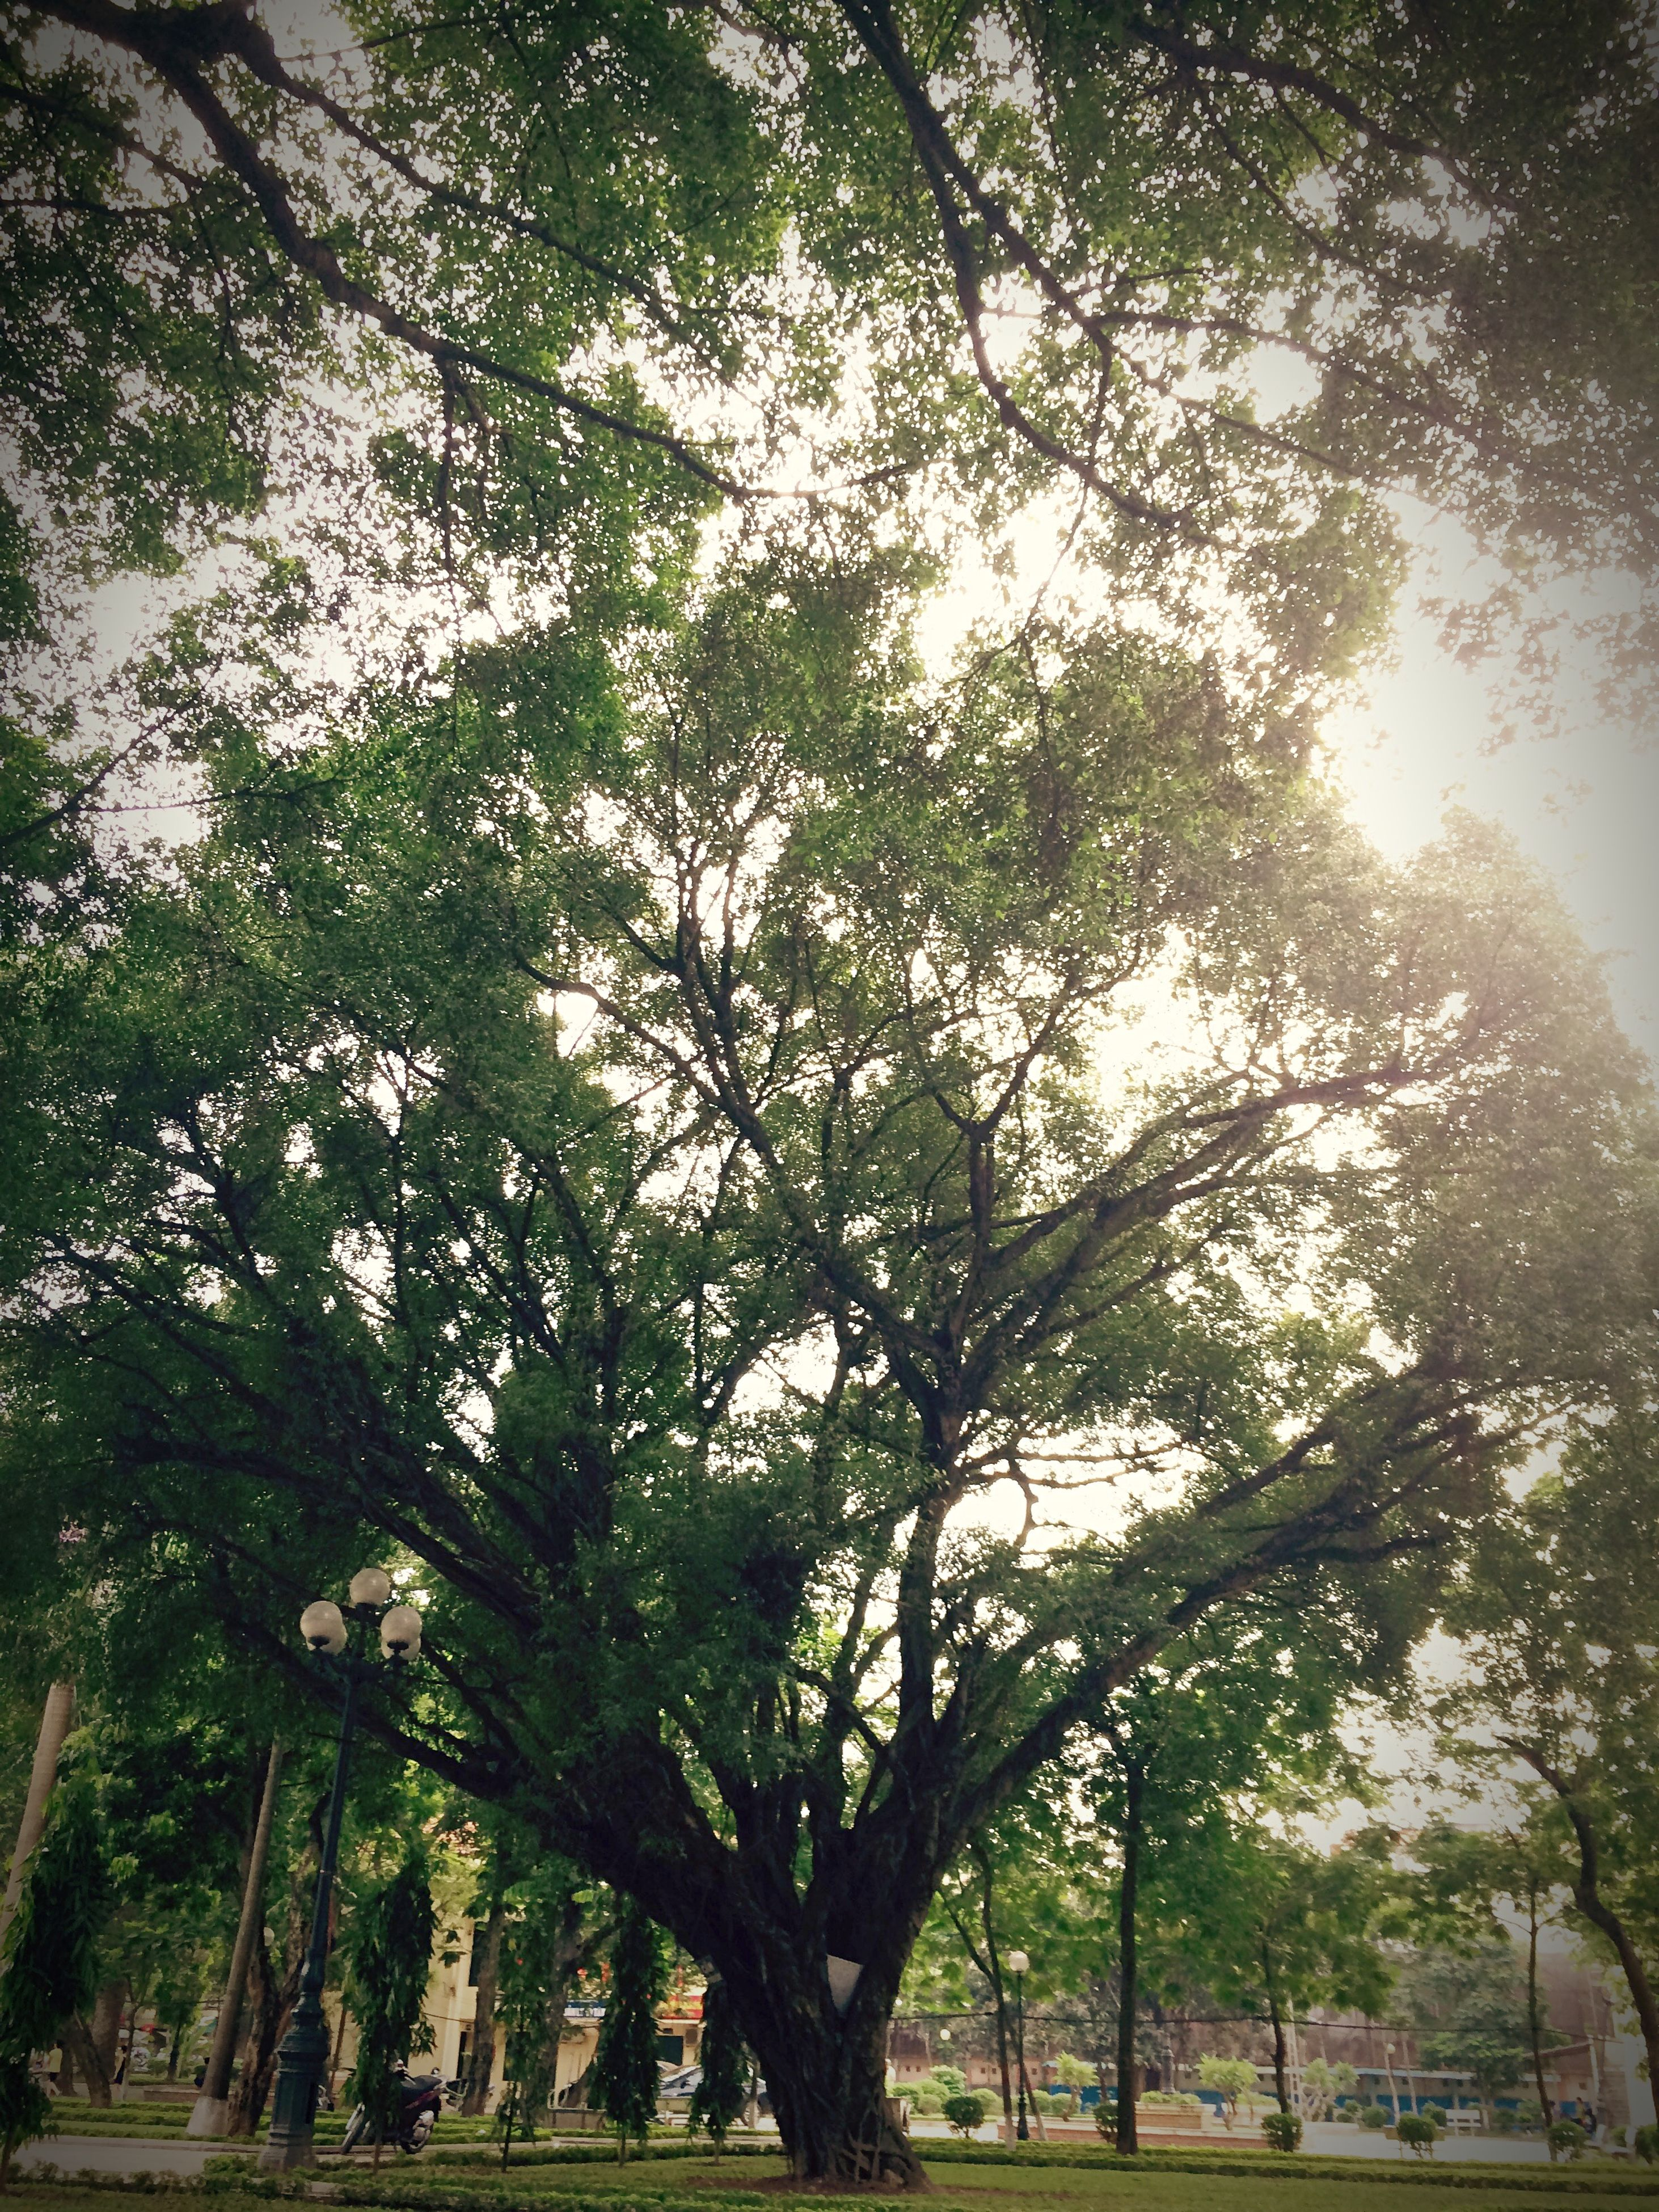 tree, growth, branch, nature, tranquility, tree trunk, beauty in nature, park - man made space, green color, sunlight, tranquil scene, low angle view, scenics, day, outdoors, sky, growing, sunbeam, plant, park